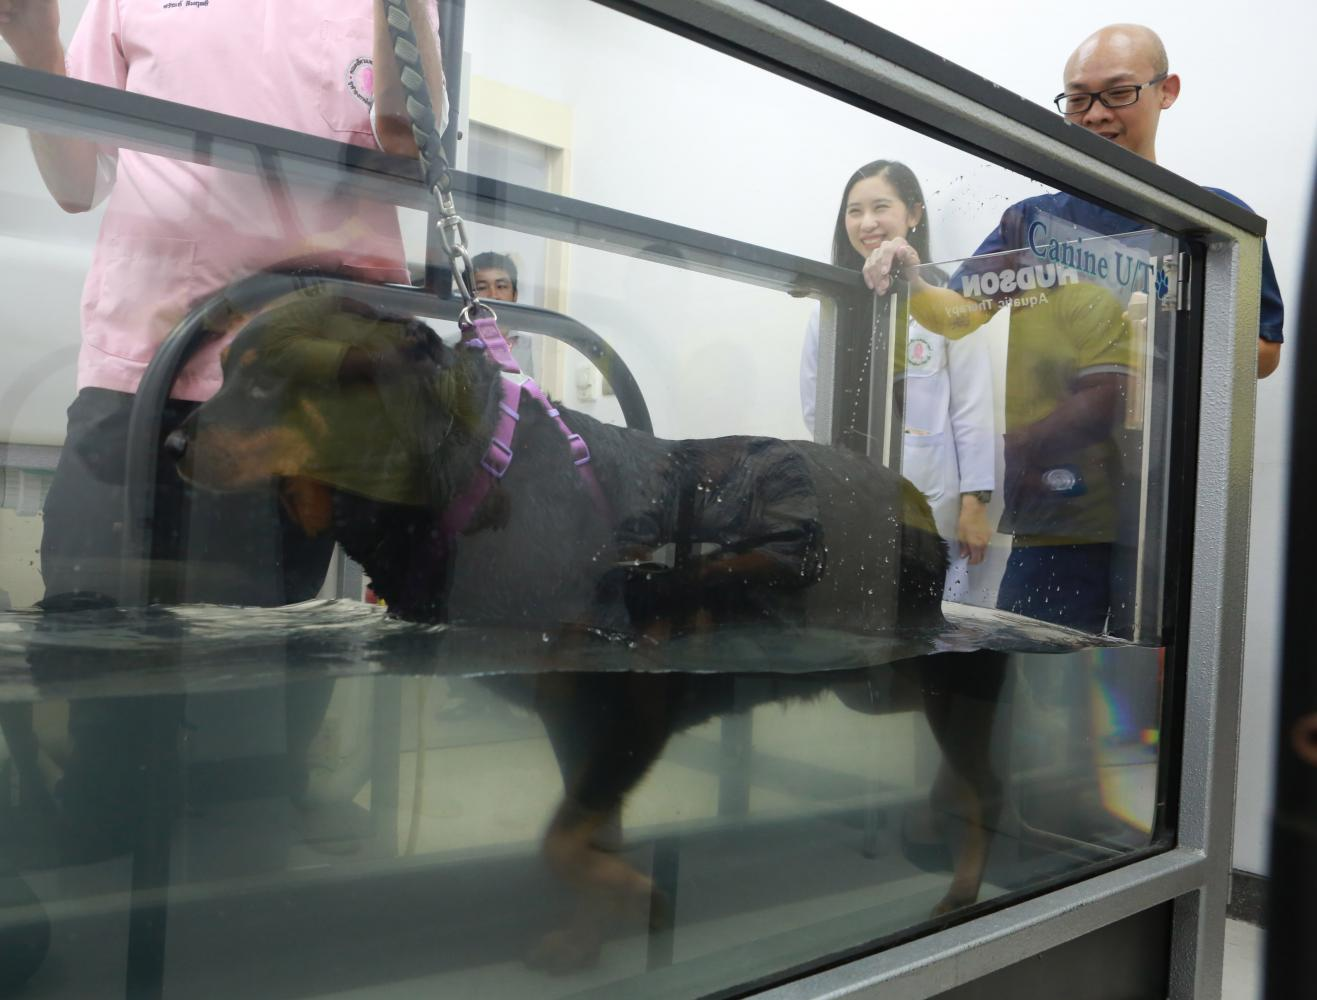 Peacan the Rottweiler goes through a weight-loss routine on a treadmill submerged in thigh-deep water at Chulalongkorn University's Small Animal Teaching Hospital. Thanks to the rigorous routine, Peacan has started shedding extra weight. (Photo by Apichit Jinakul)